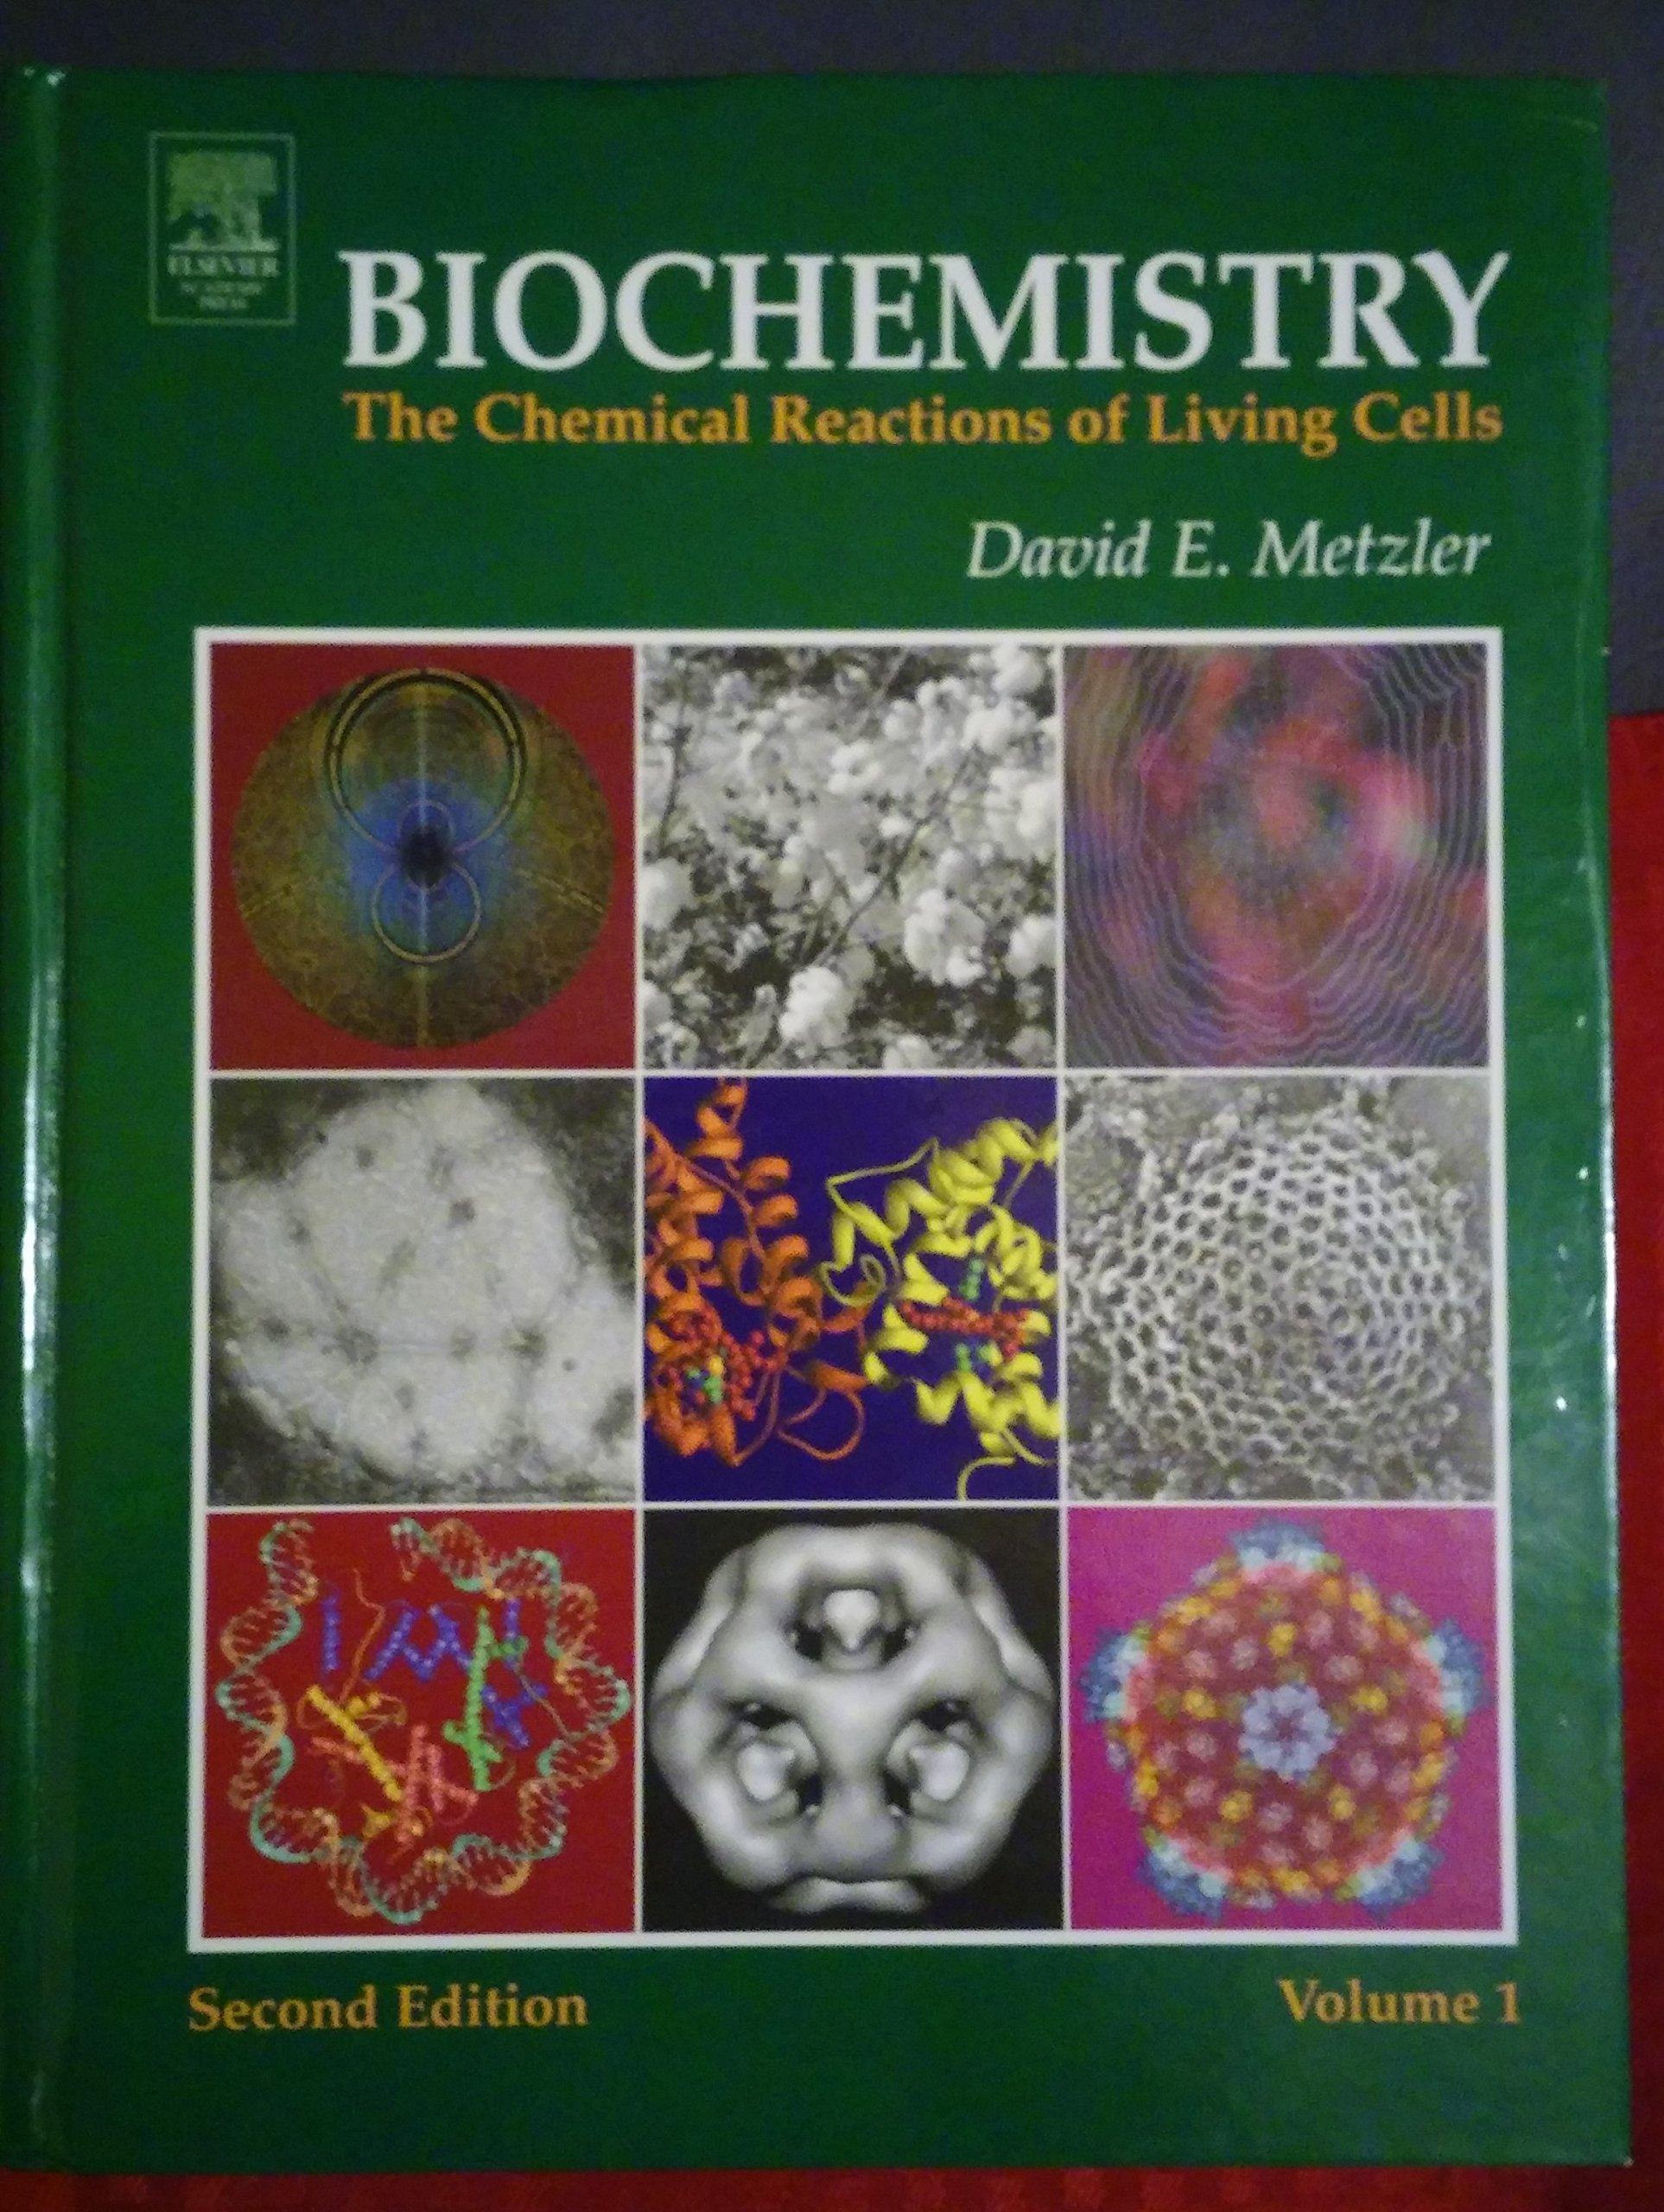 By David E. Metzler - Biochemistry: The Chemical Reactions of Living Cells: 2nd (second) Edition pdf epub